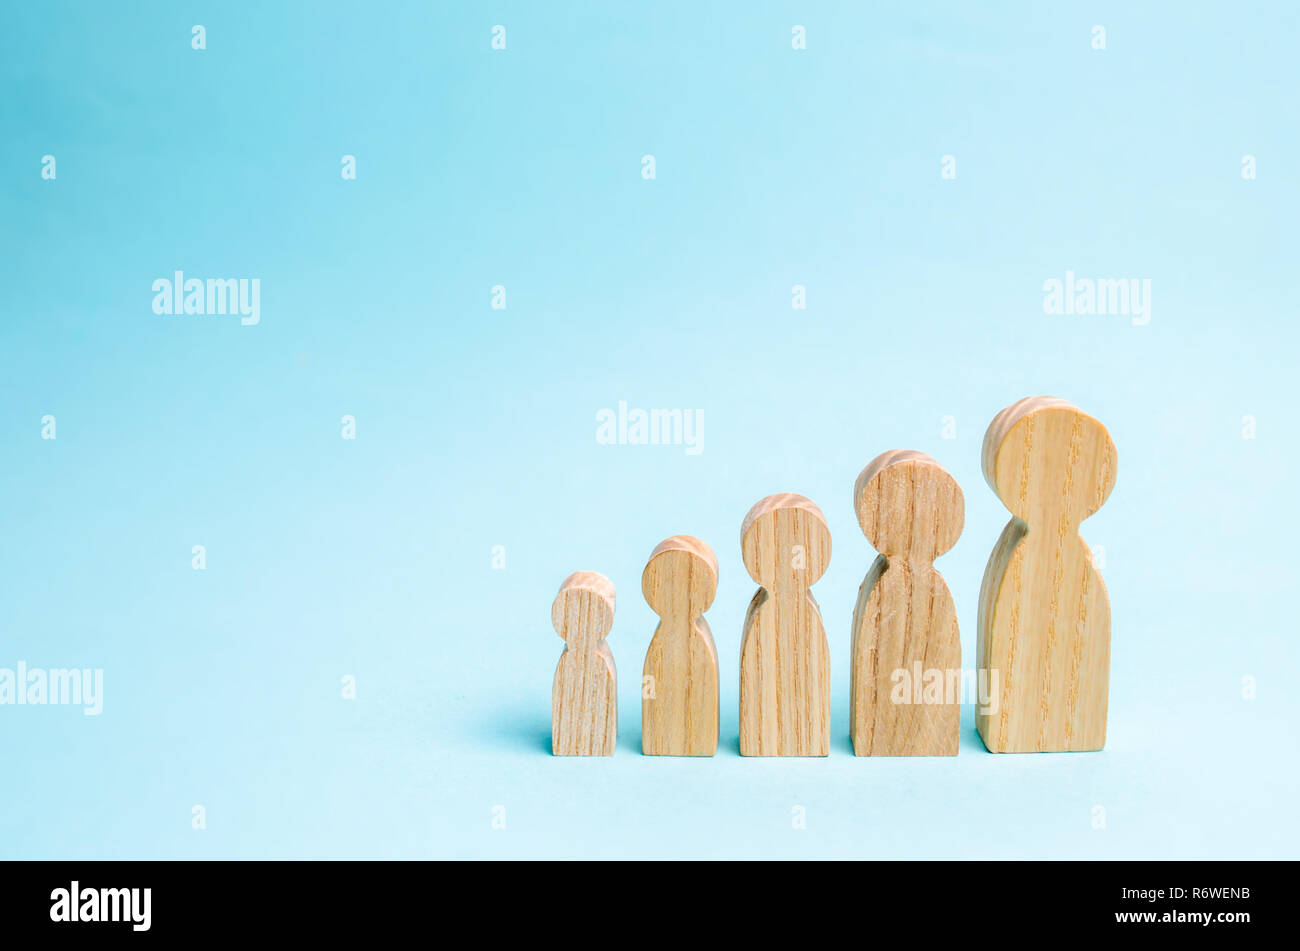 Wooden figures of people from small to large stand in a semicircle. The concept of self-development, growth of personality and professionalism. Childr - Stock Image